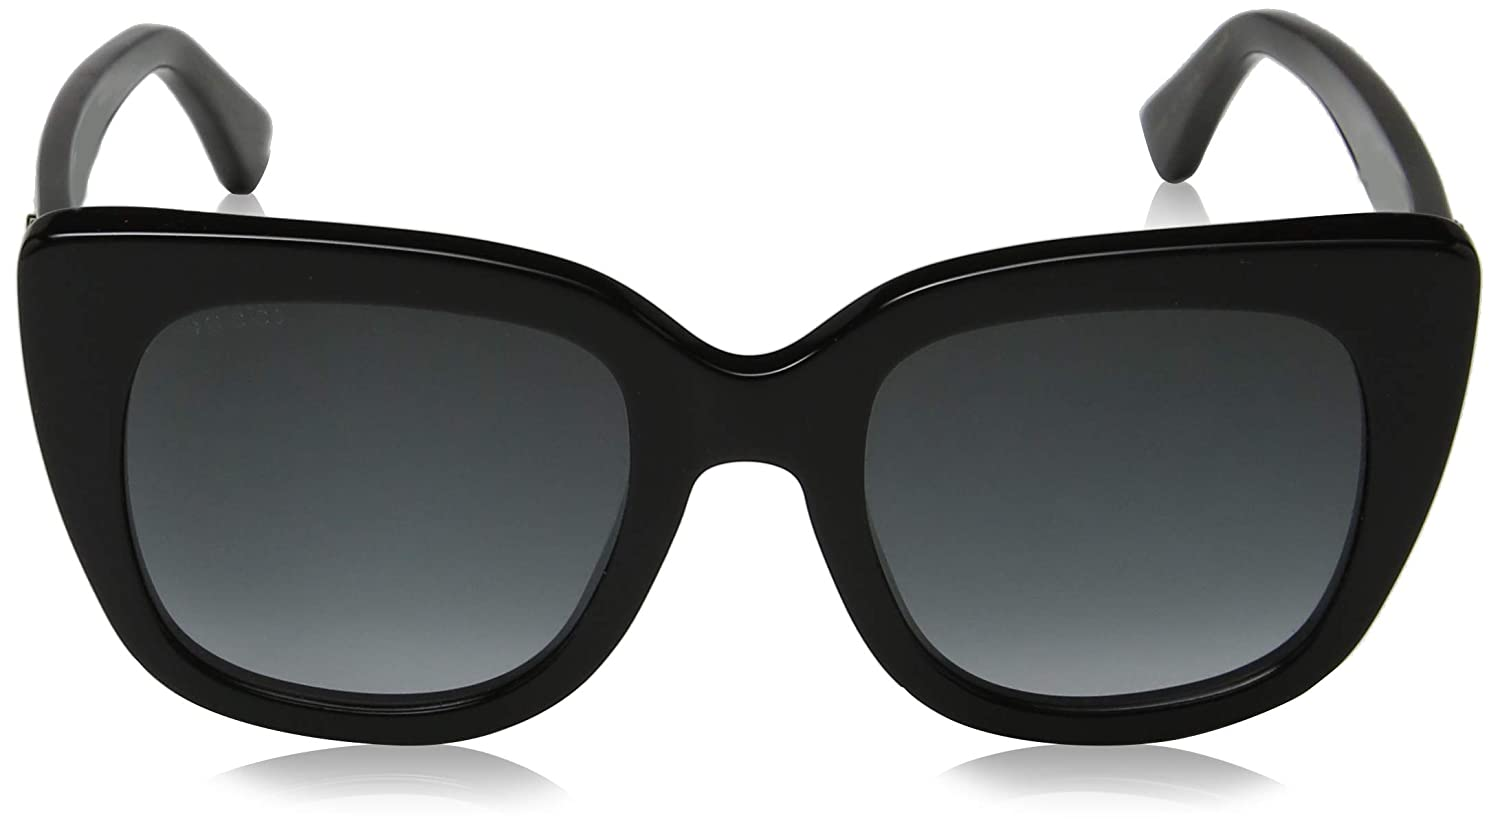 22c72445092 Amazon.com  Gucci GG0163S 001 Black GG0163S Square Sunglasses Lens Category  3 Size 51mm  Clothing